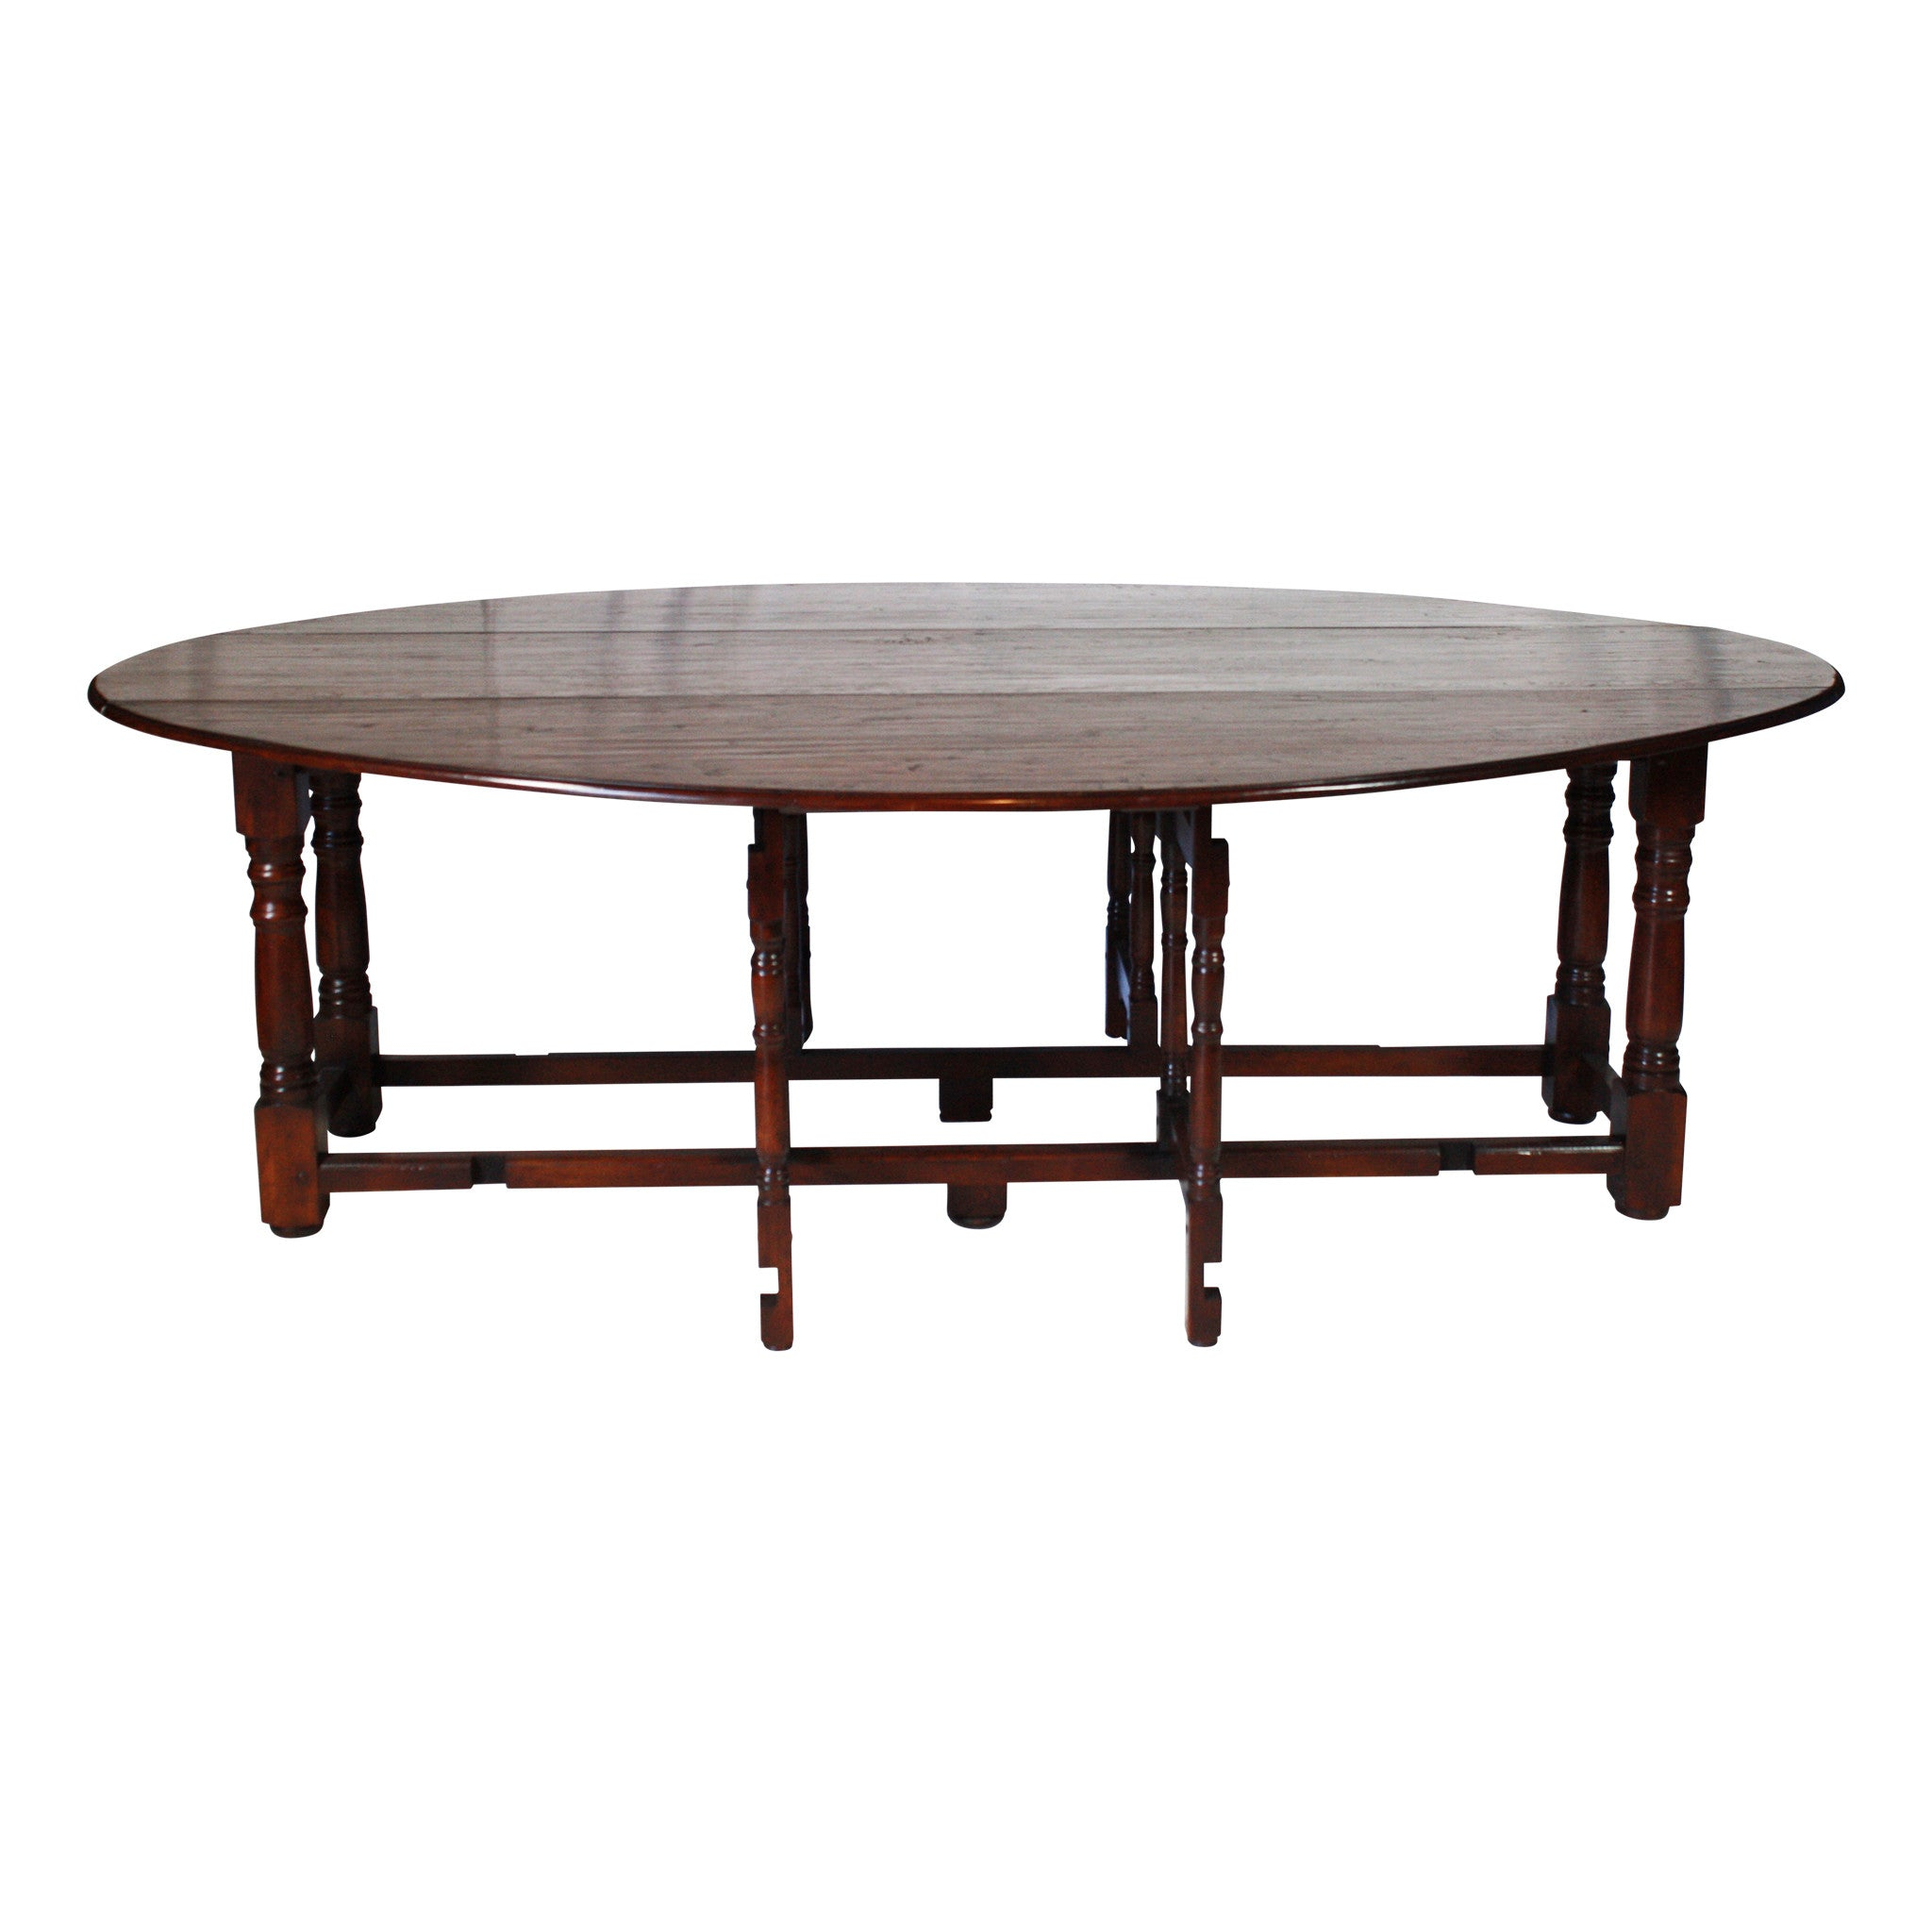 Oak Gate Leg Table (1stdibs)